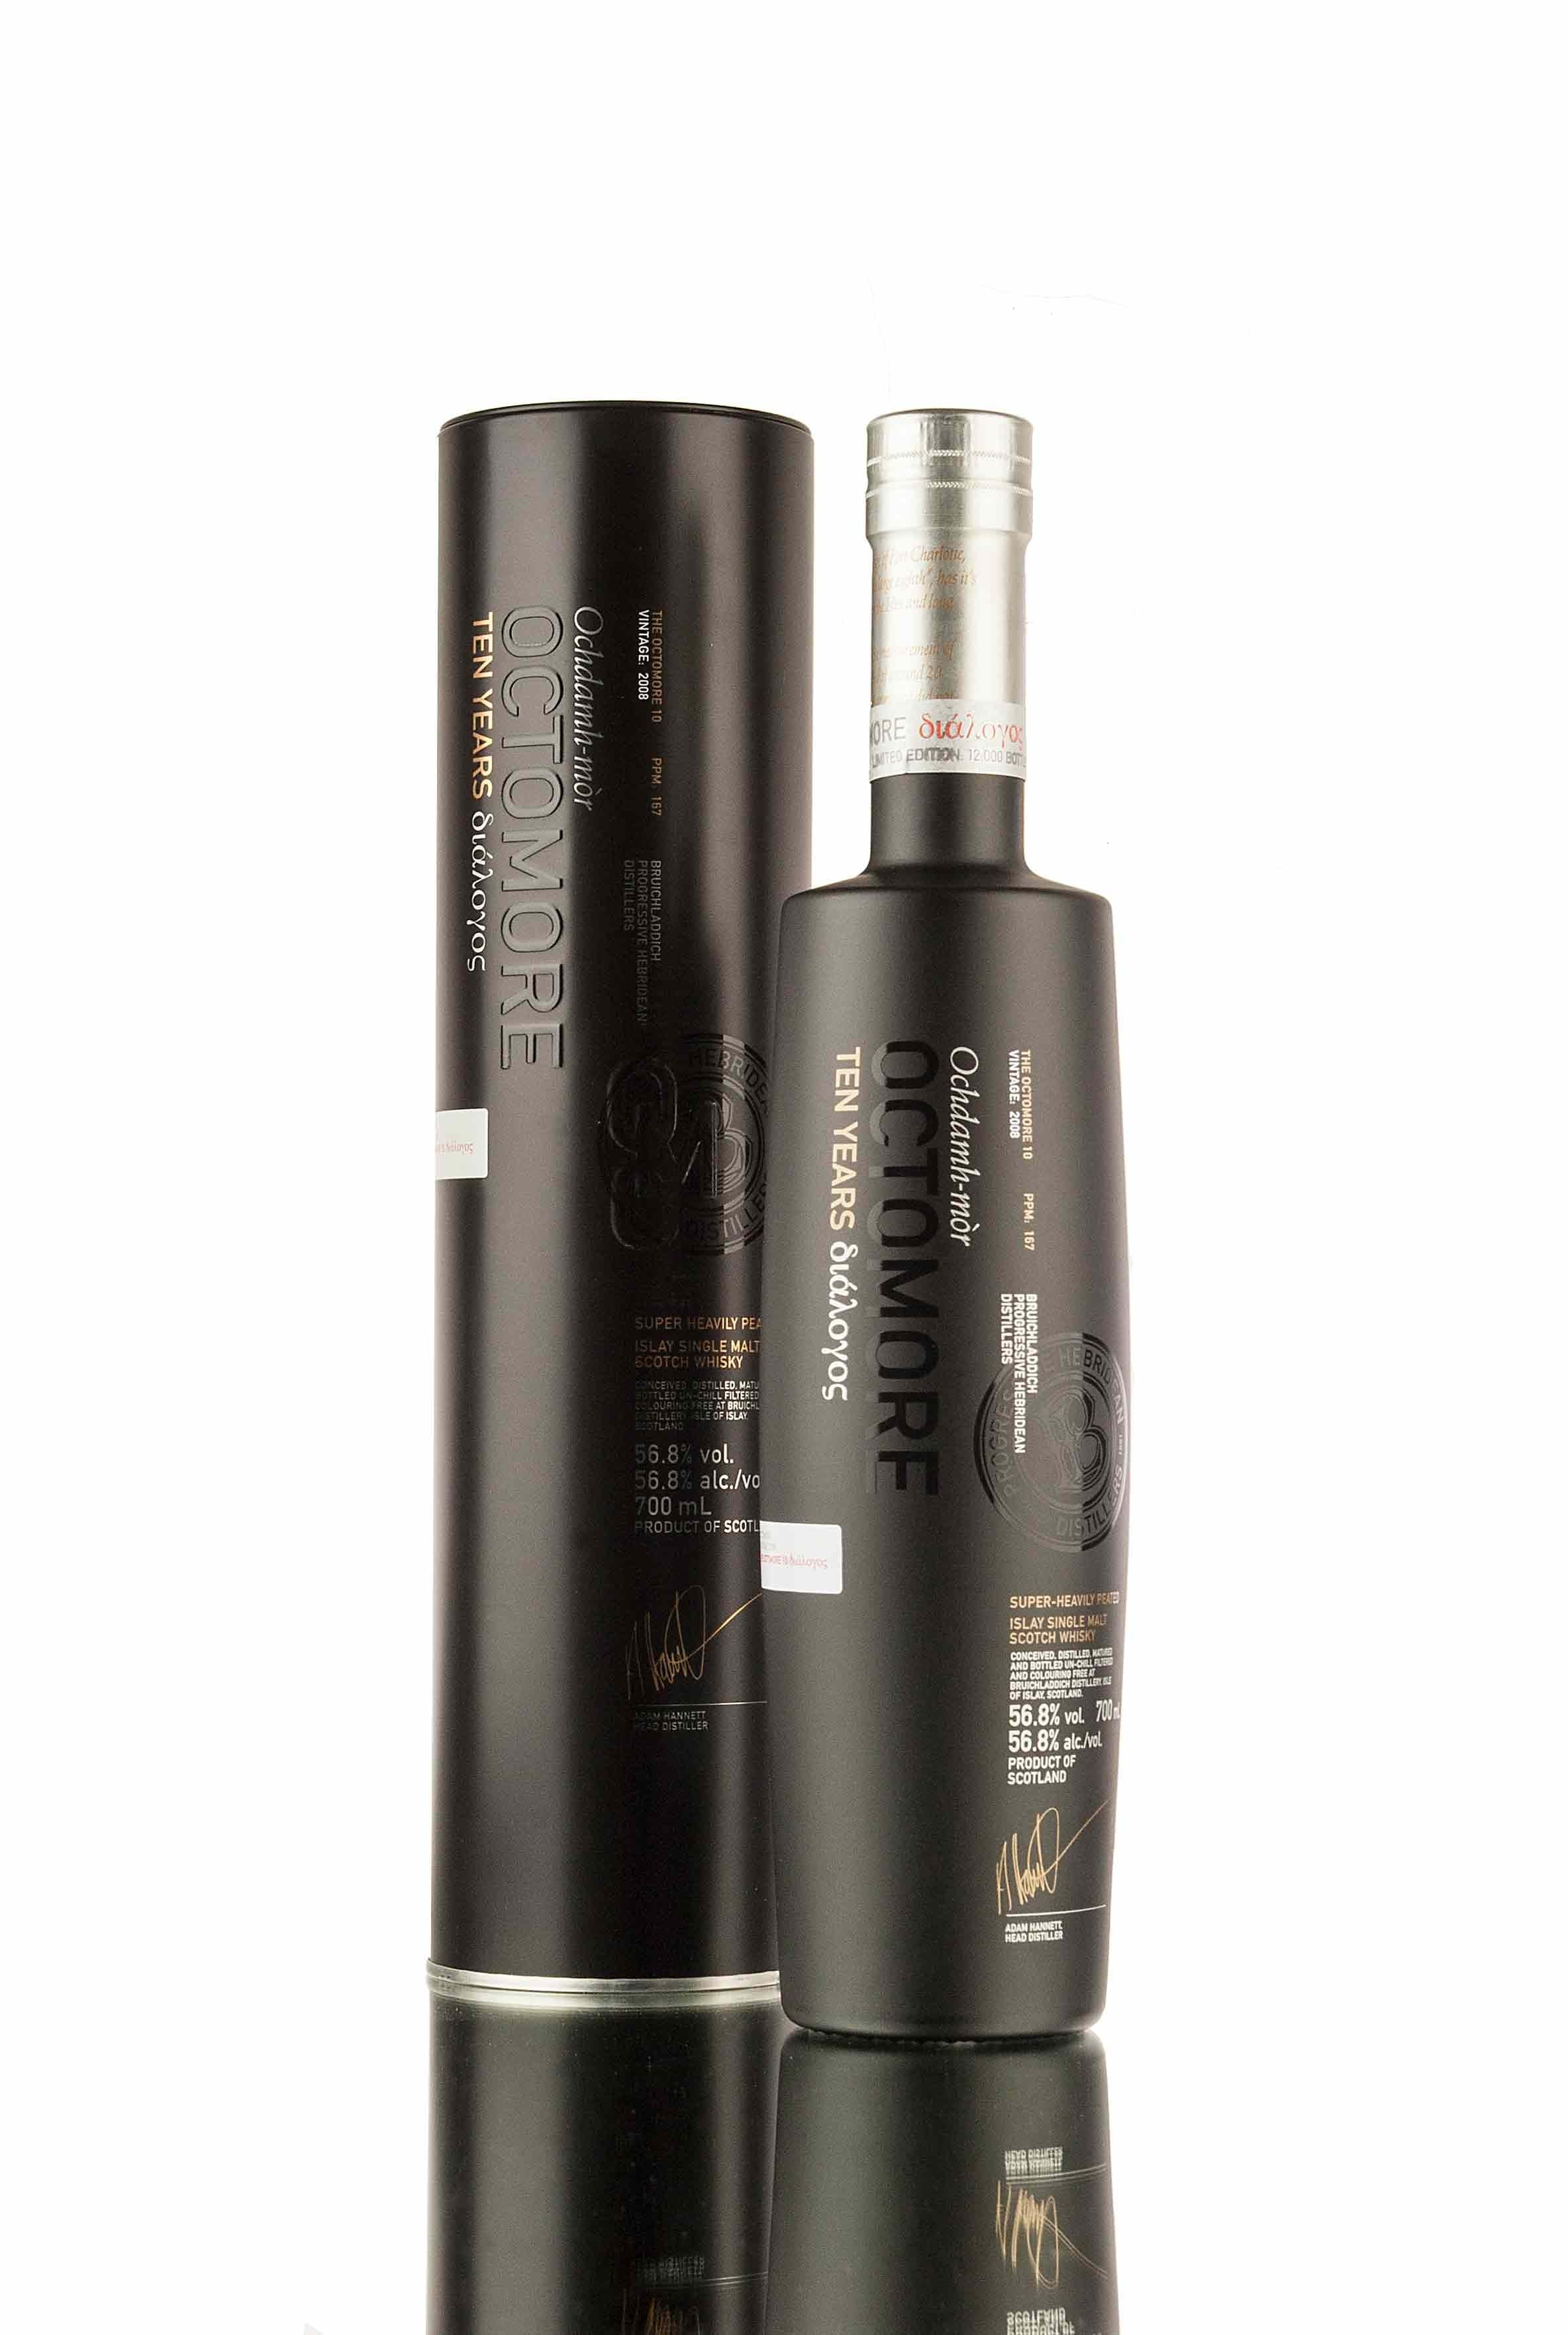 Octomore 10 Year Old - 2008 | Dialogos | Third Edition